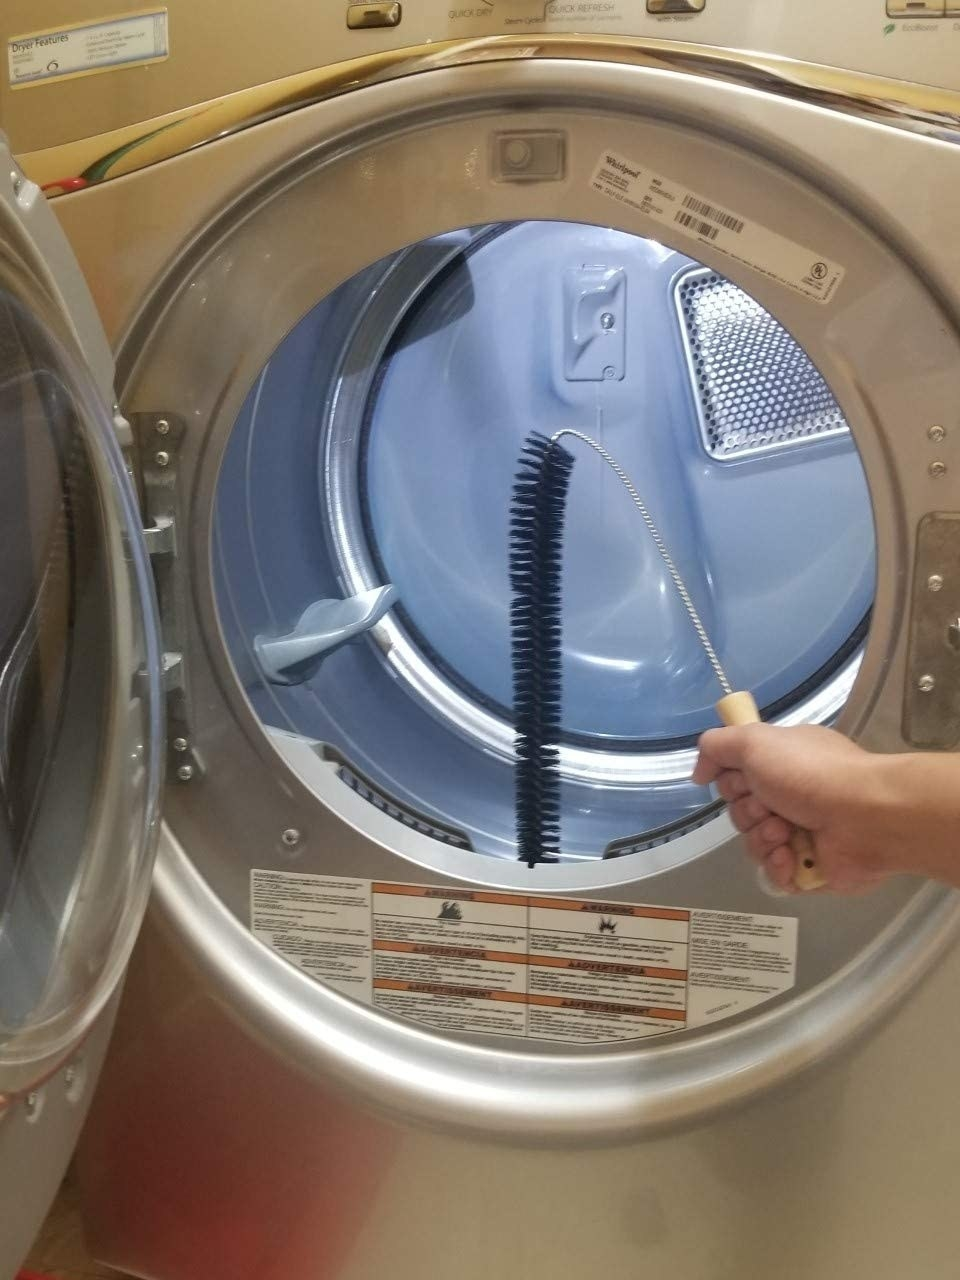 person using long brush to clean out the lint trap in a front-load clothes dryer